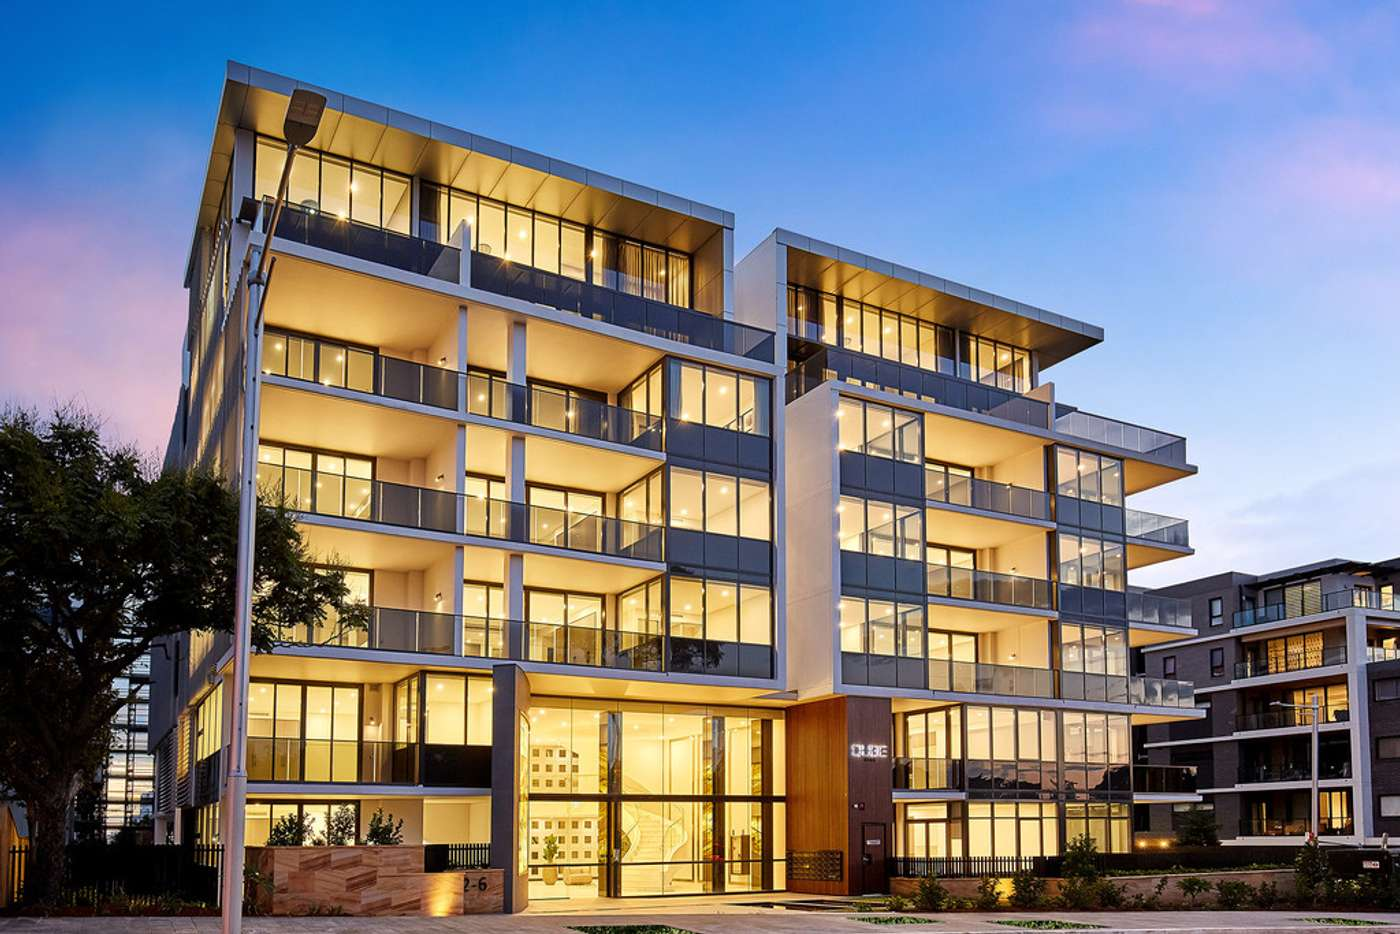 Main view of Homely apartment listing, 32/2-6 Junction Street, Ryde NSW 2112